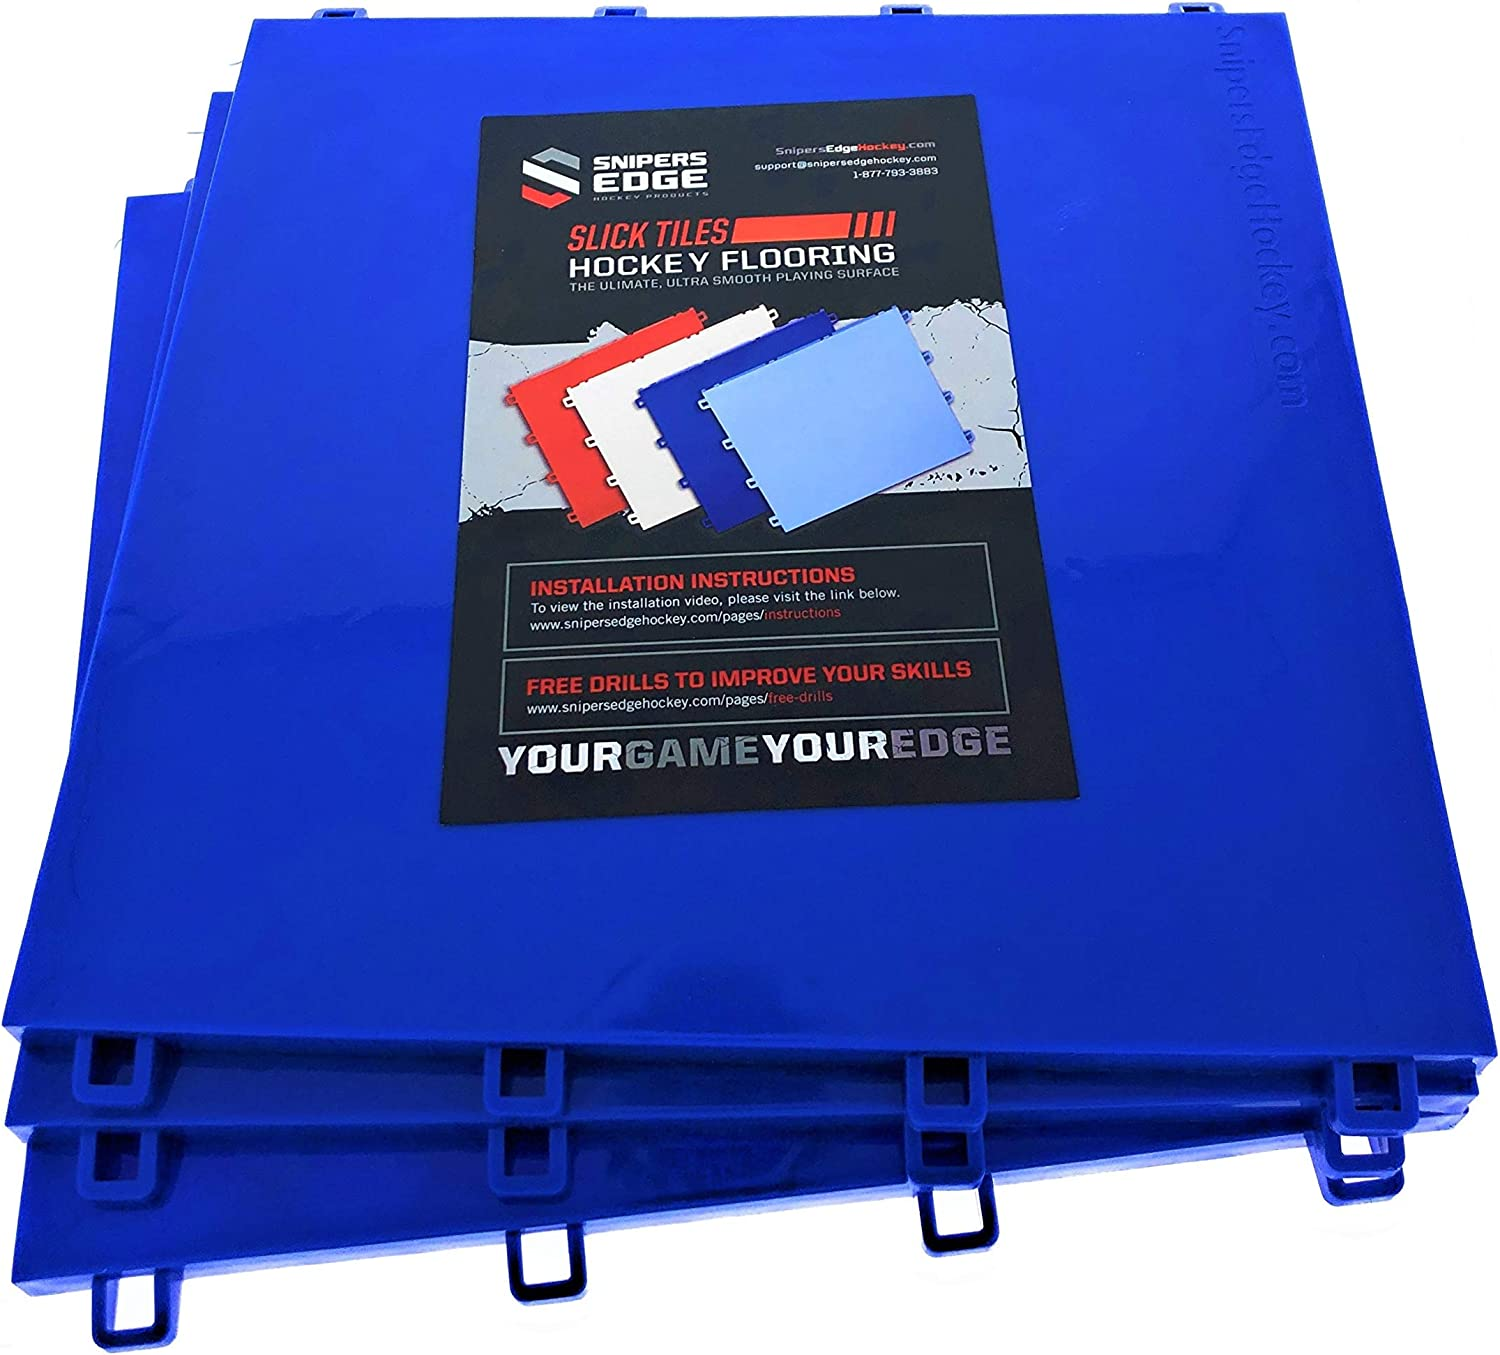 """Sniper's Edge Hockey Dryland Slick Tiles (10 Blue Squares) – Premium Grade Technology with UV Coated Protection, Built to Last & Sized Right at 12"""" X 12"""" Per Tile (10 sq ft. per Box) – Made in USA : Sports & Outdoors"""